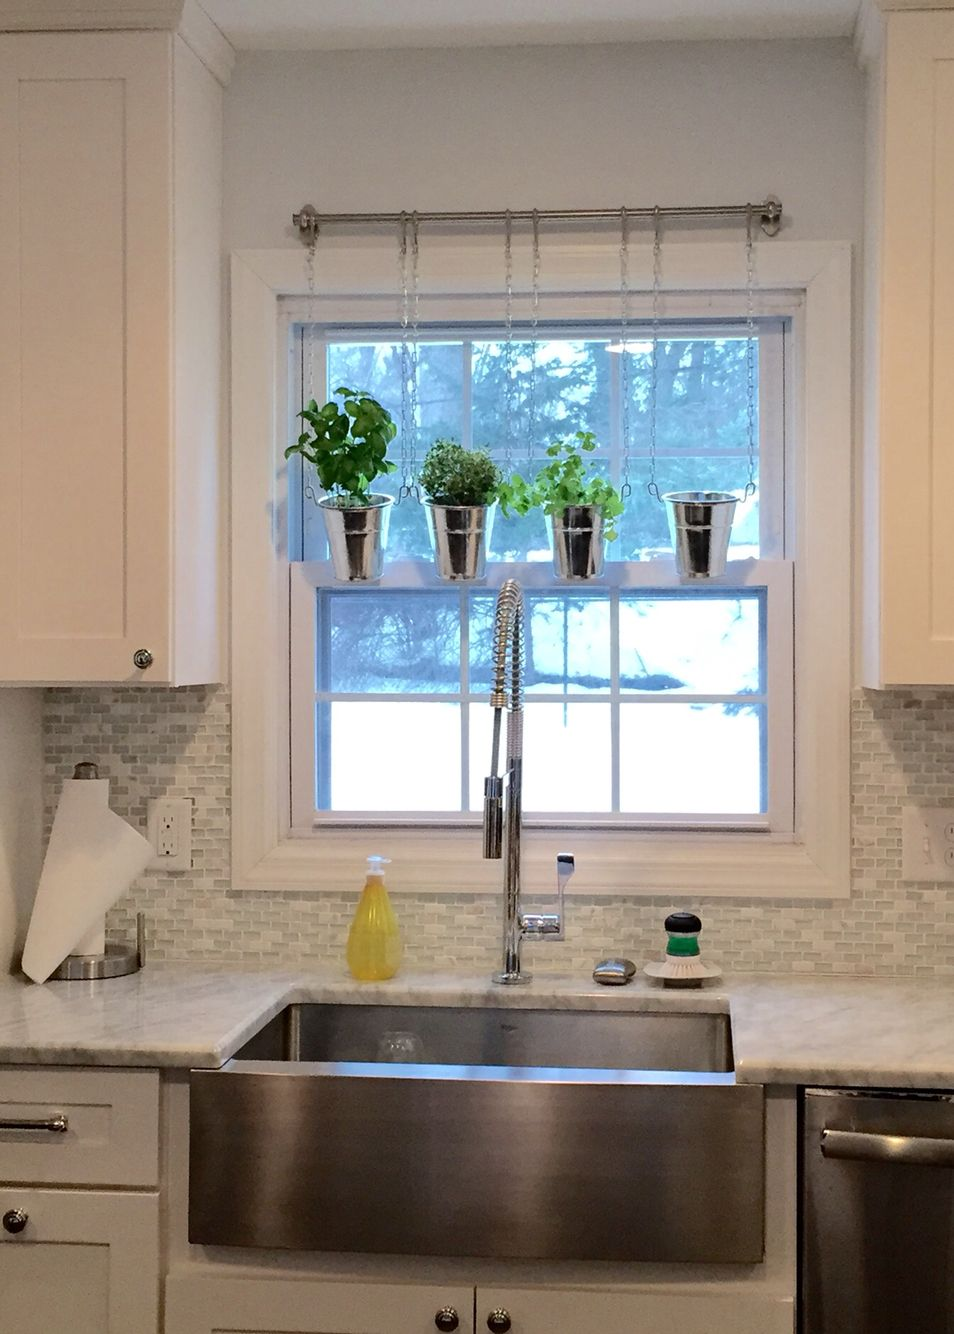 Using the IKEA Fintorp system as a window herb garden | any ...